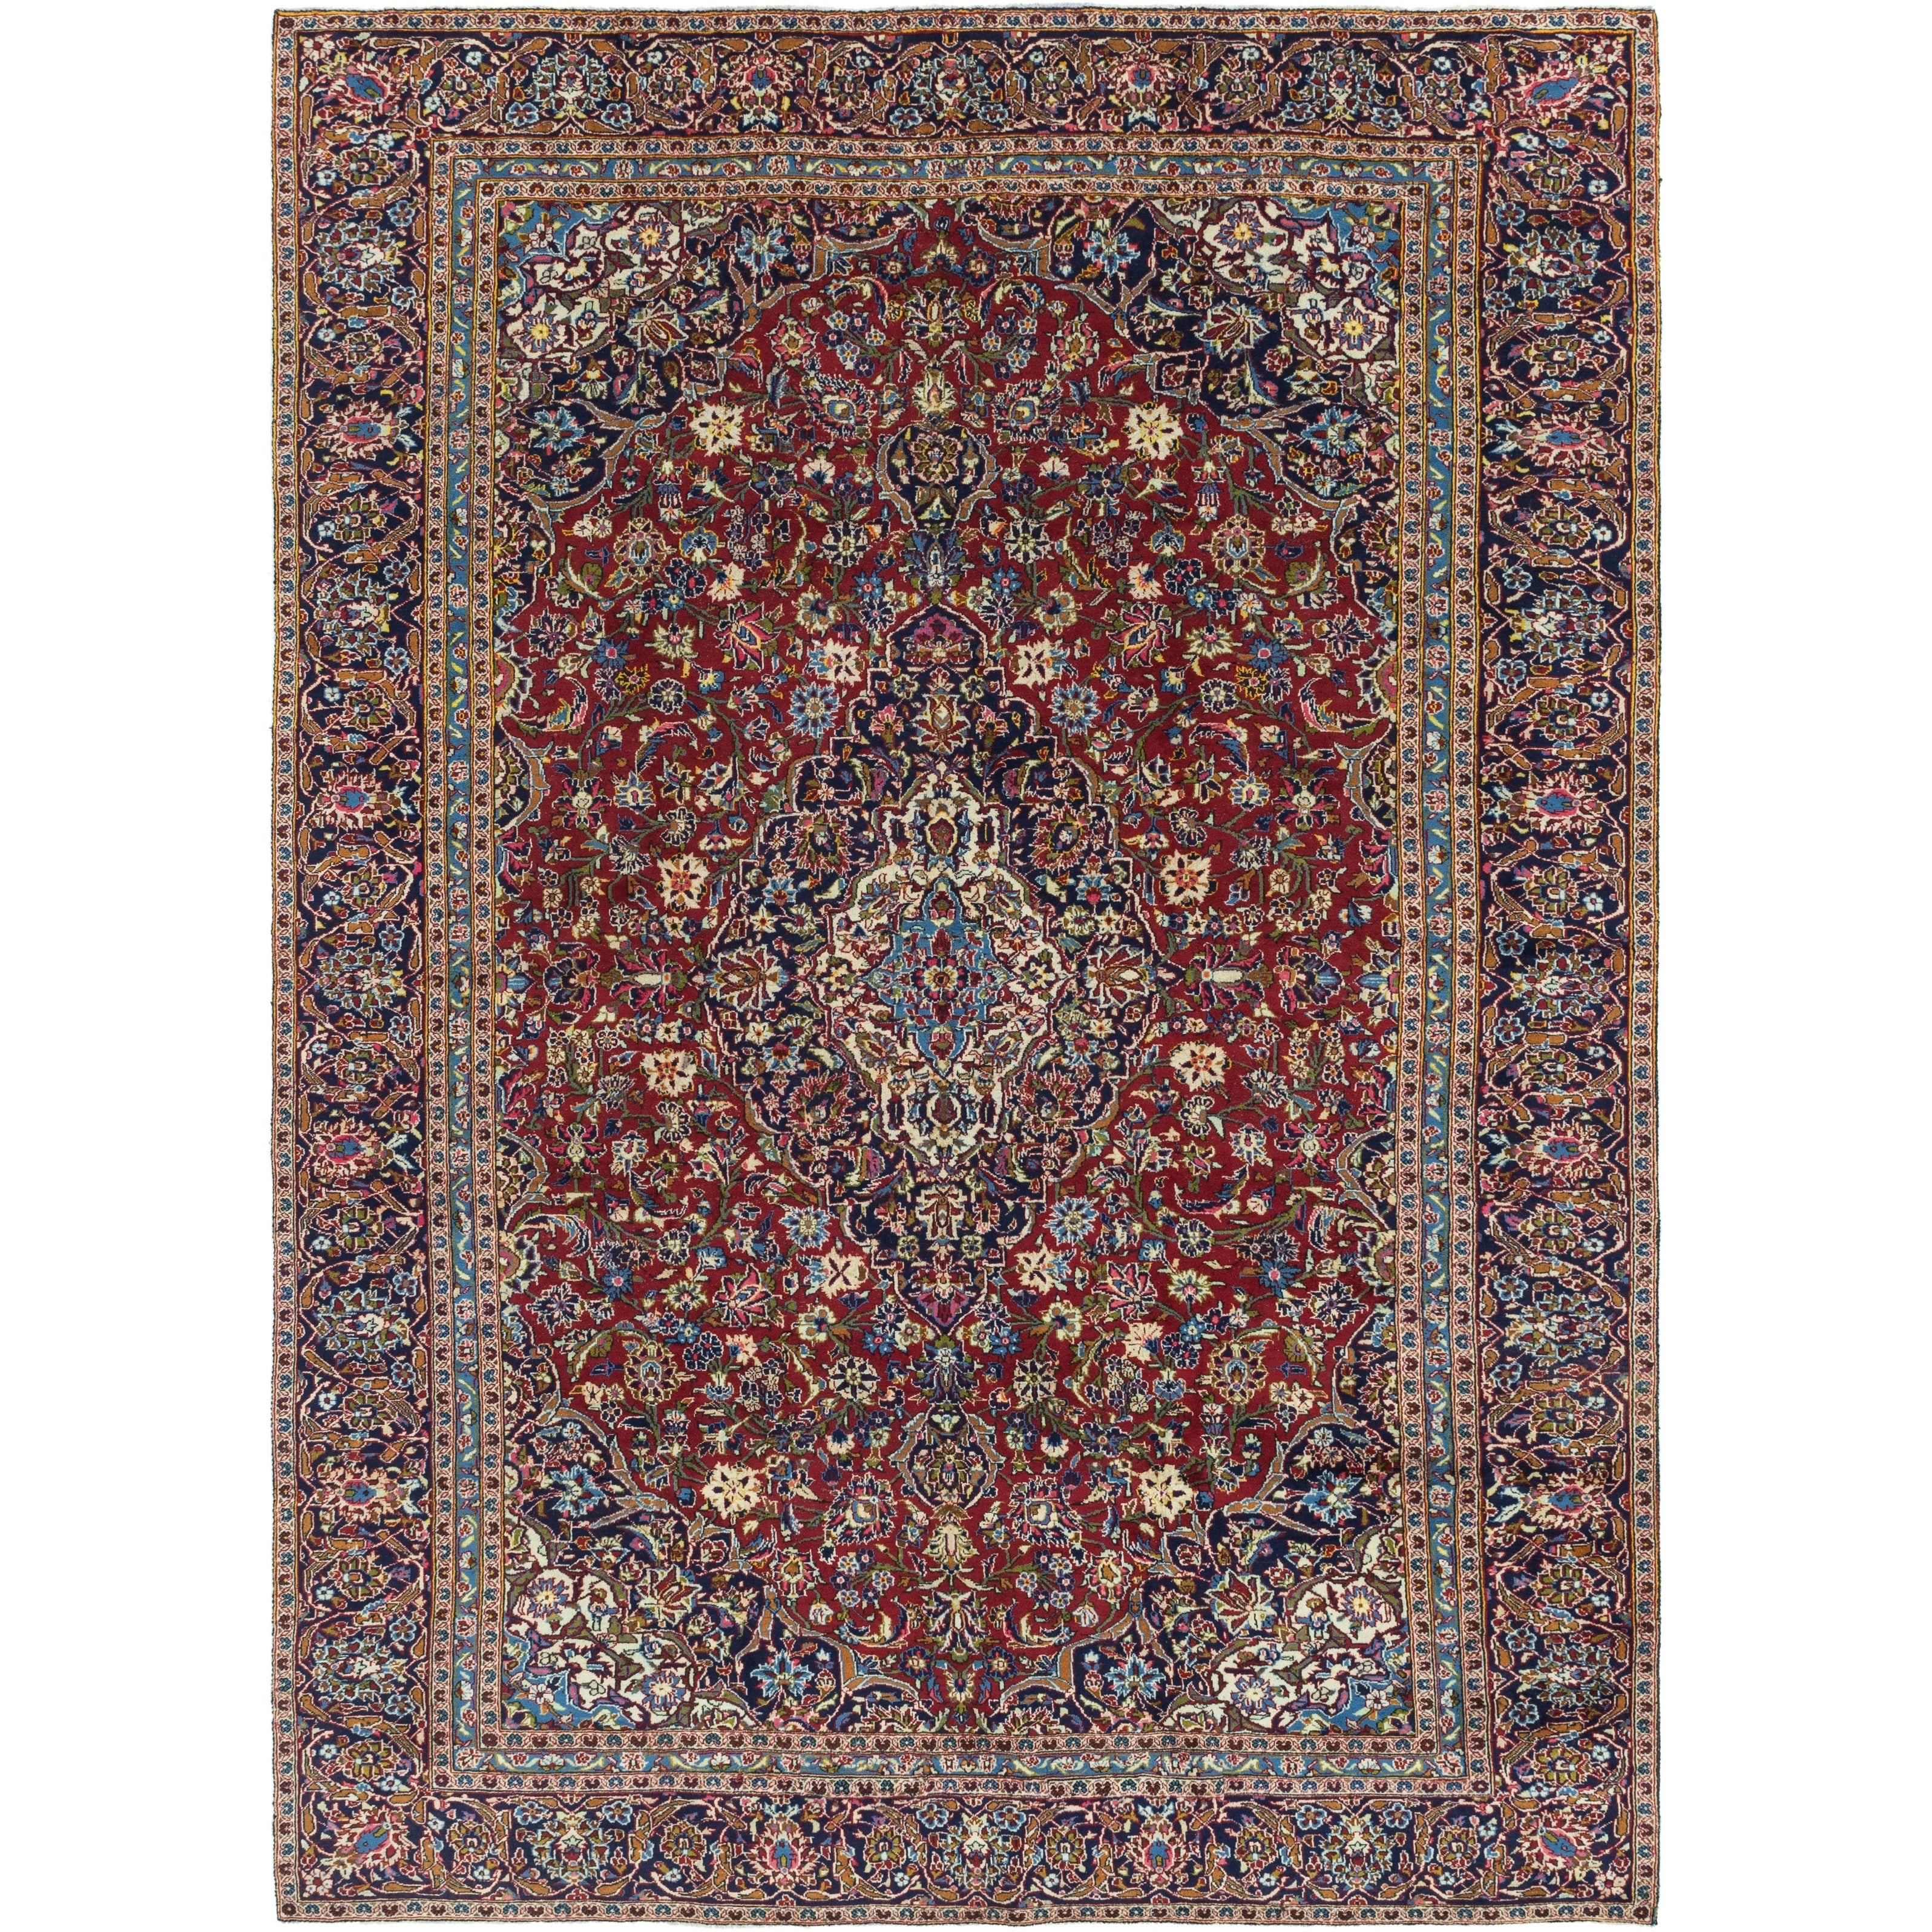 Hand Knotted Kashan Wool Area Rug - 9 x 12 6 (Red - 9 x 12 6)